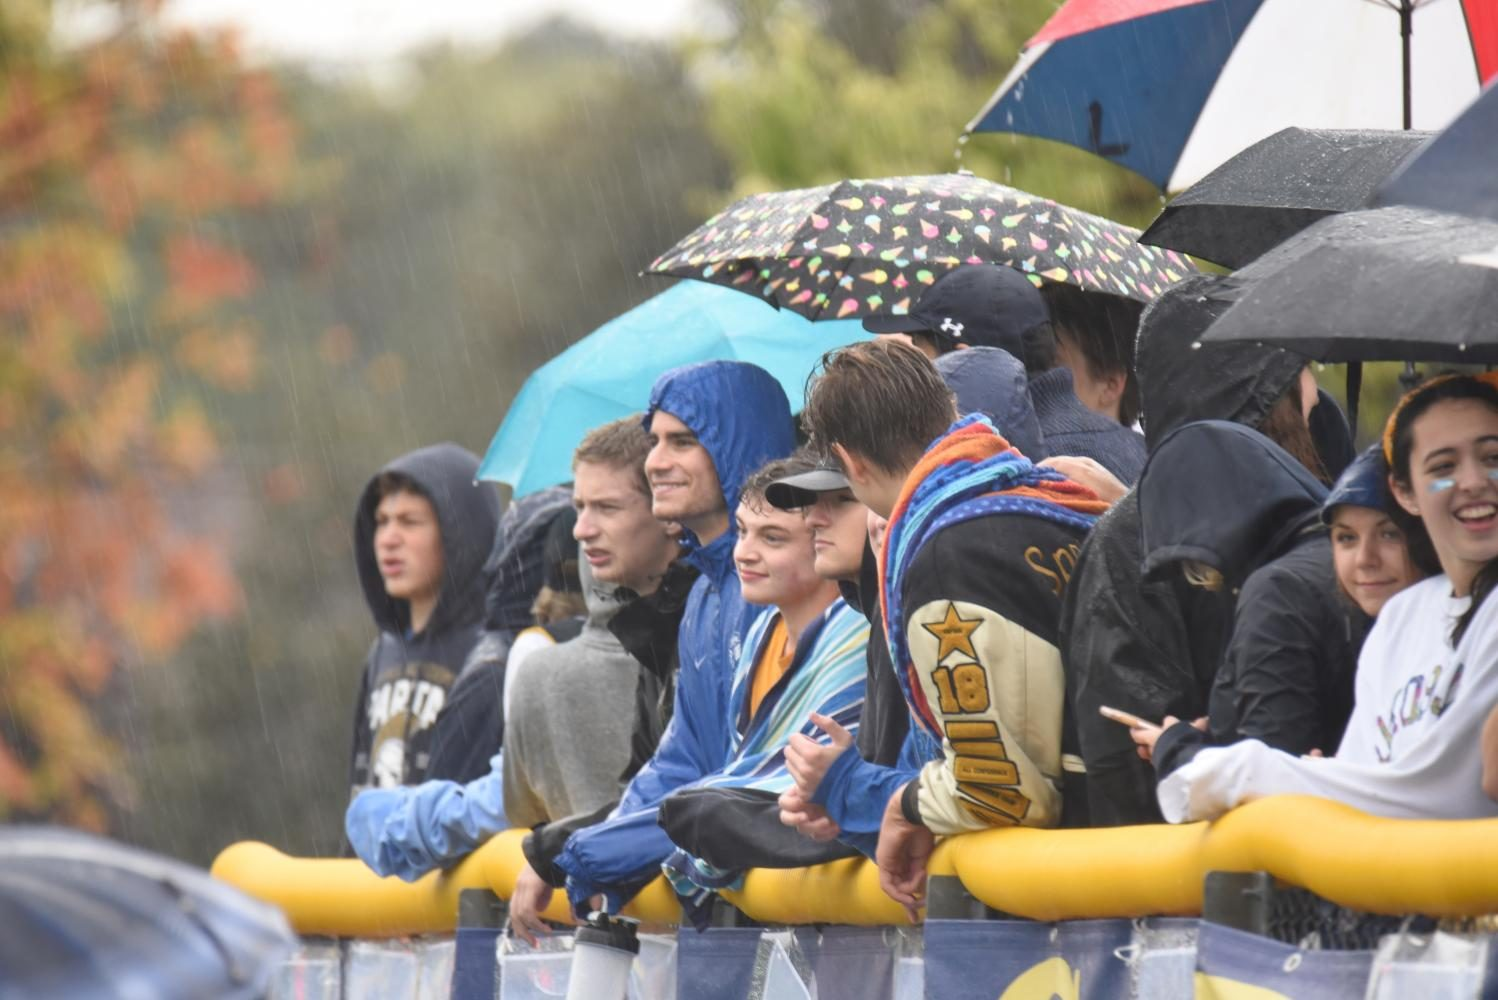 The fans were in high spirits throughout the game, even with the chilling conditions.